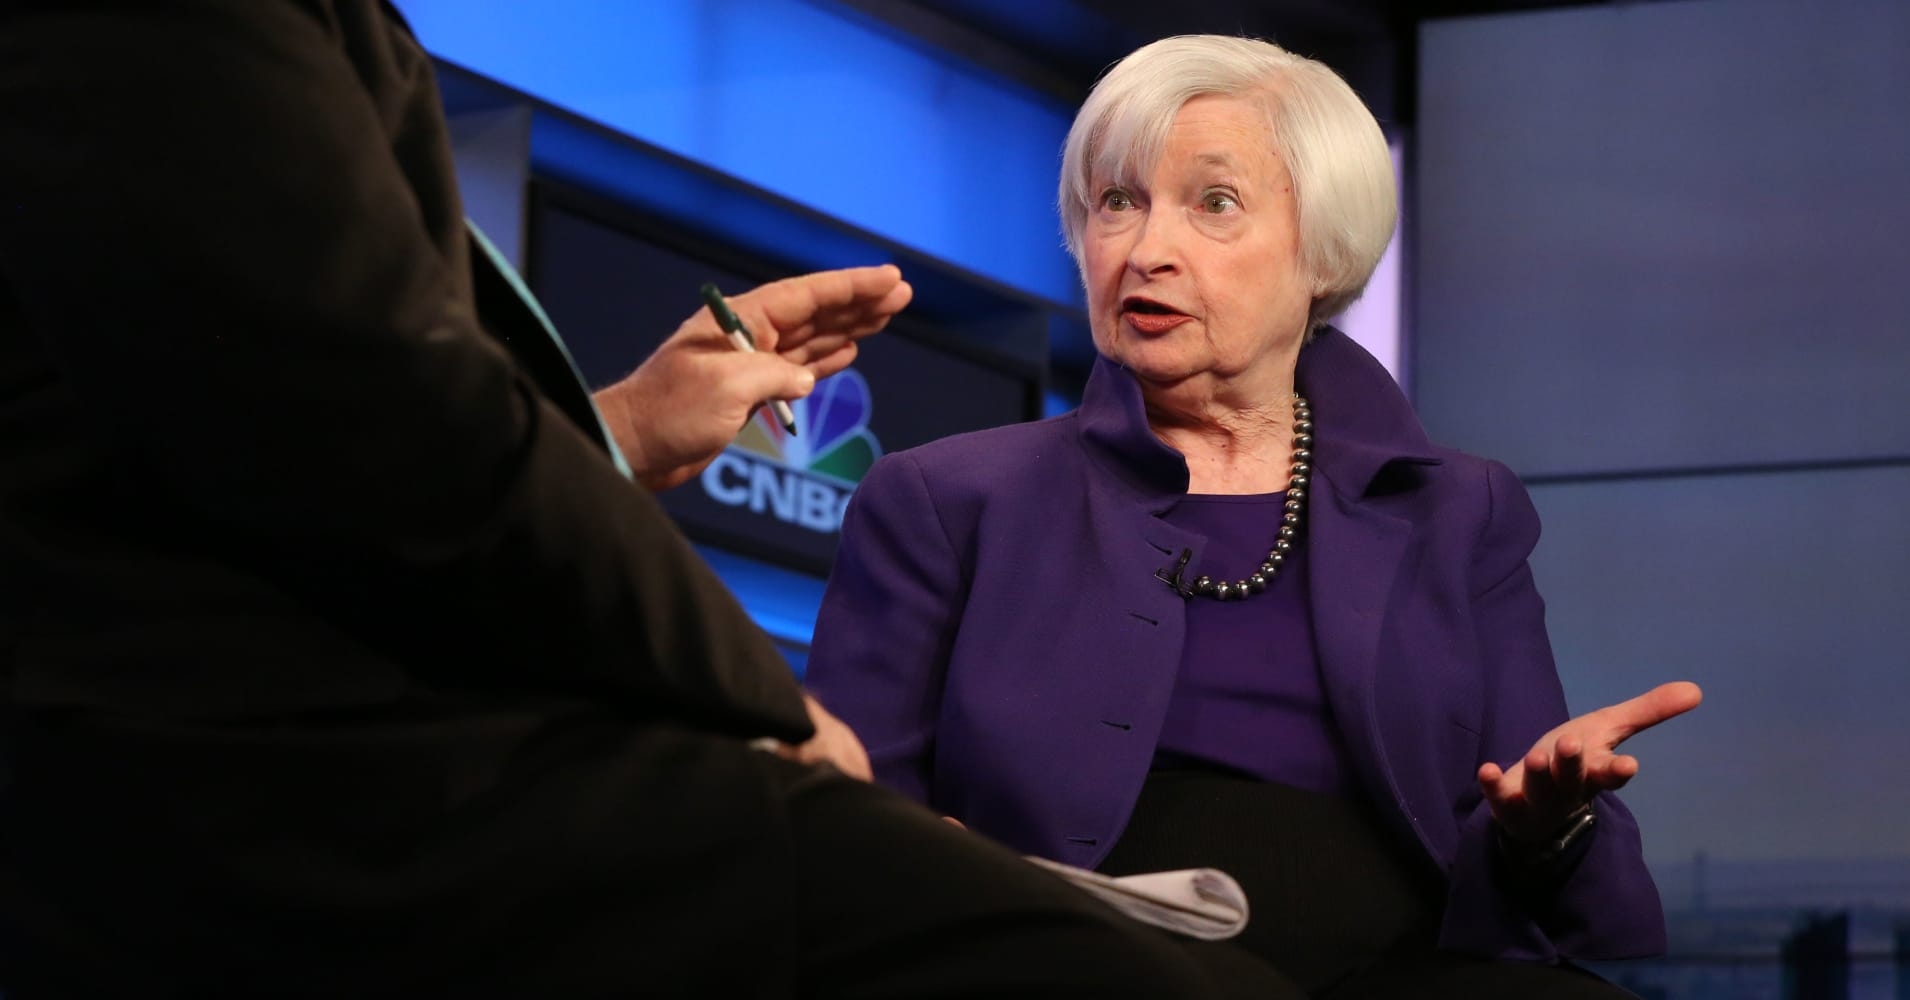 Janet Yellen worries Trump comments could hurt confidence, says Fed should remain independent